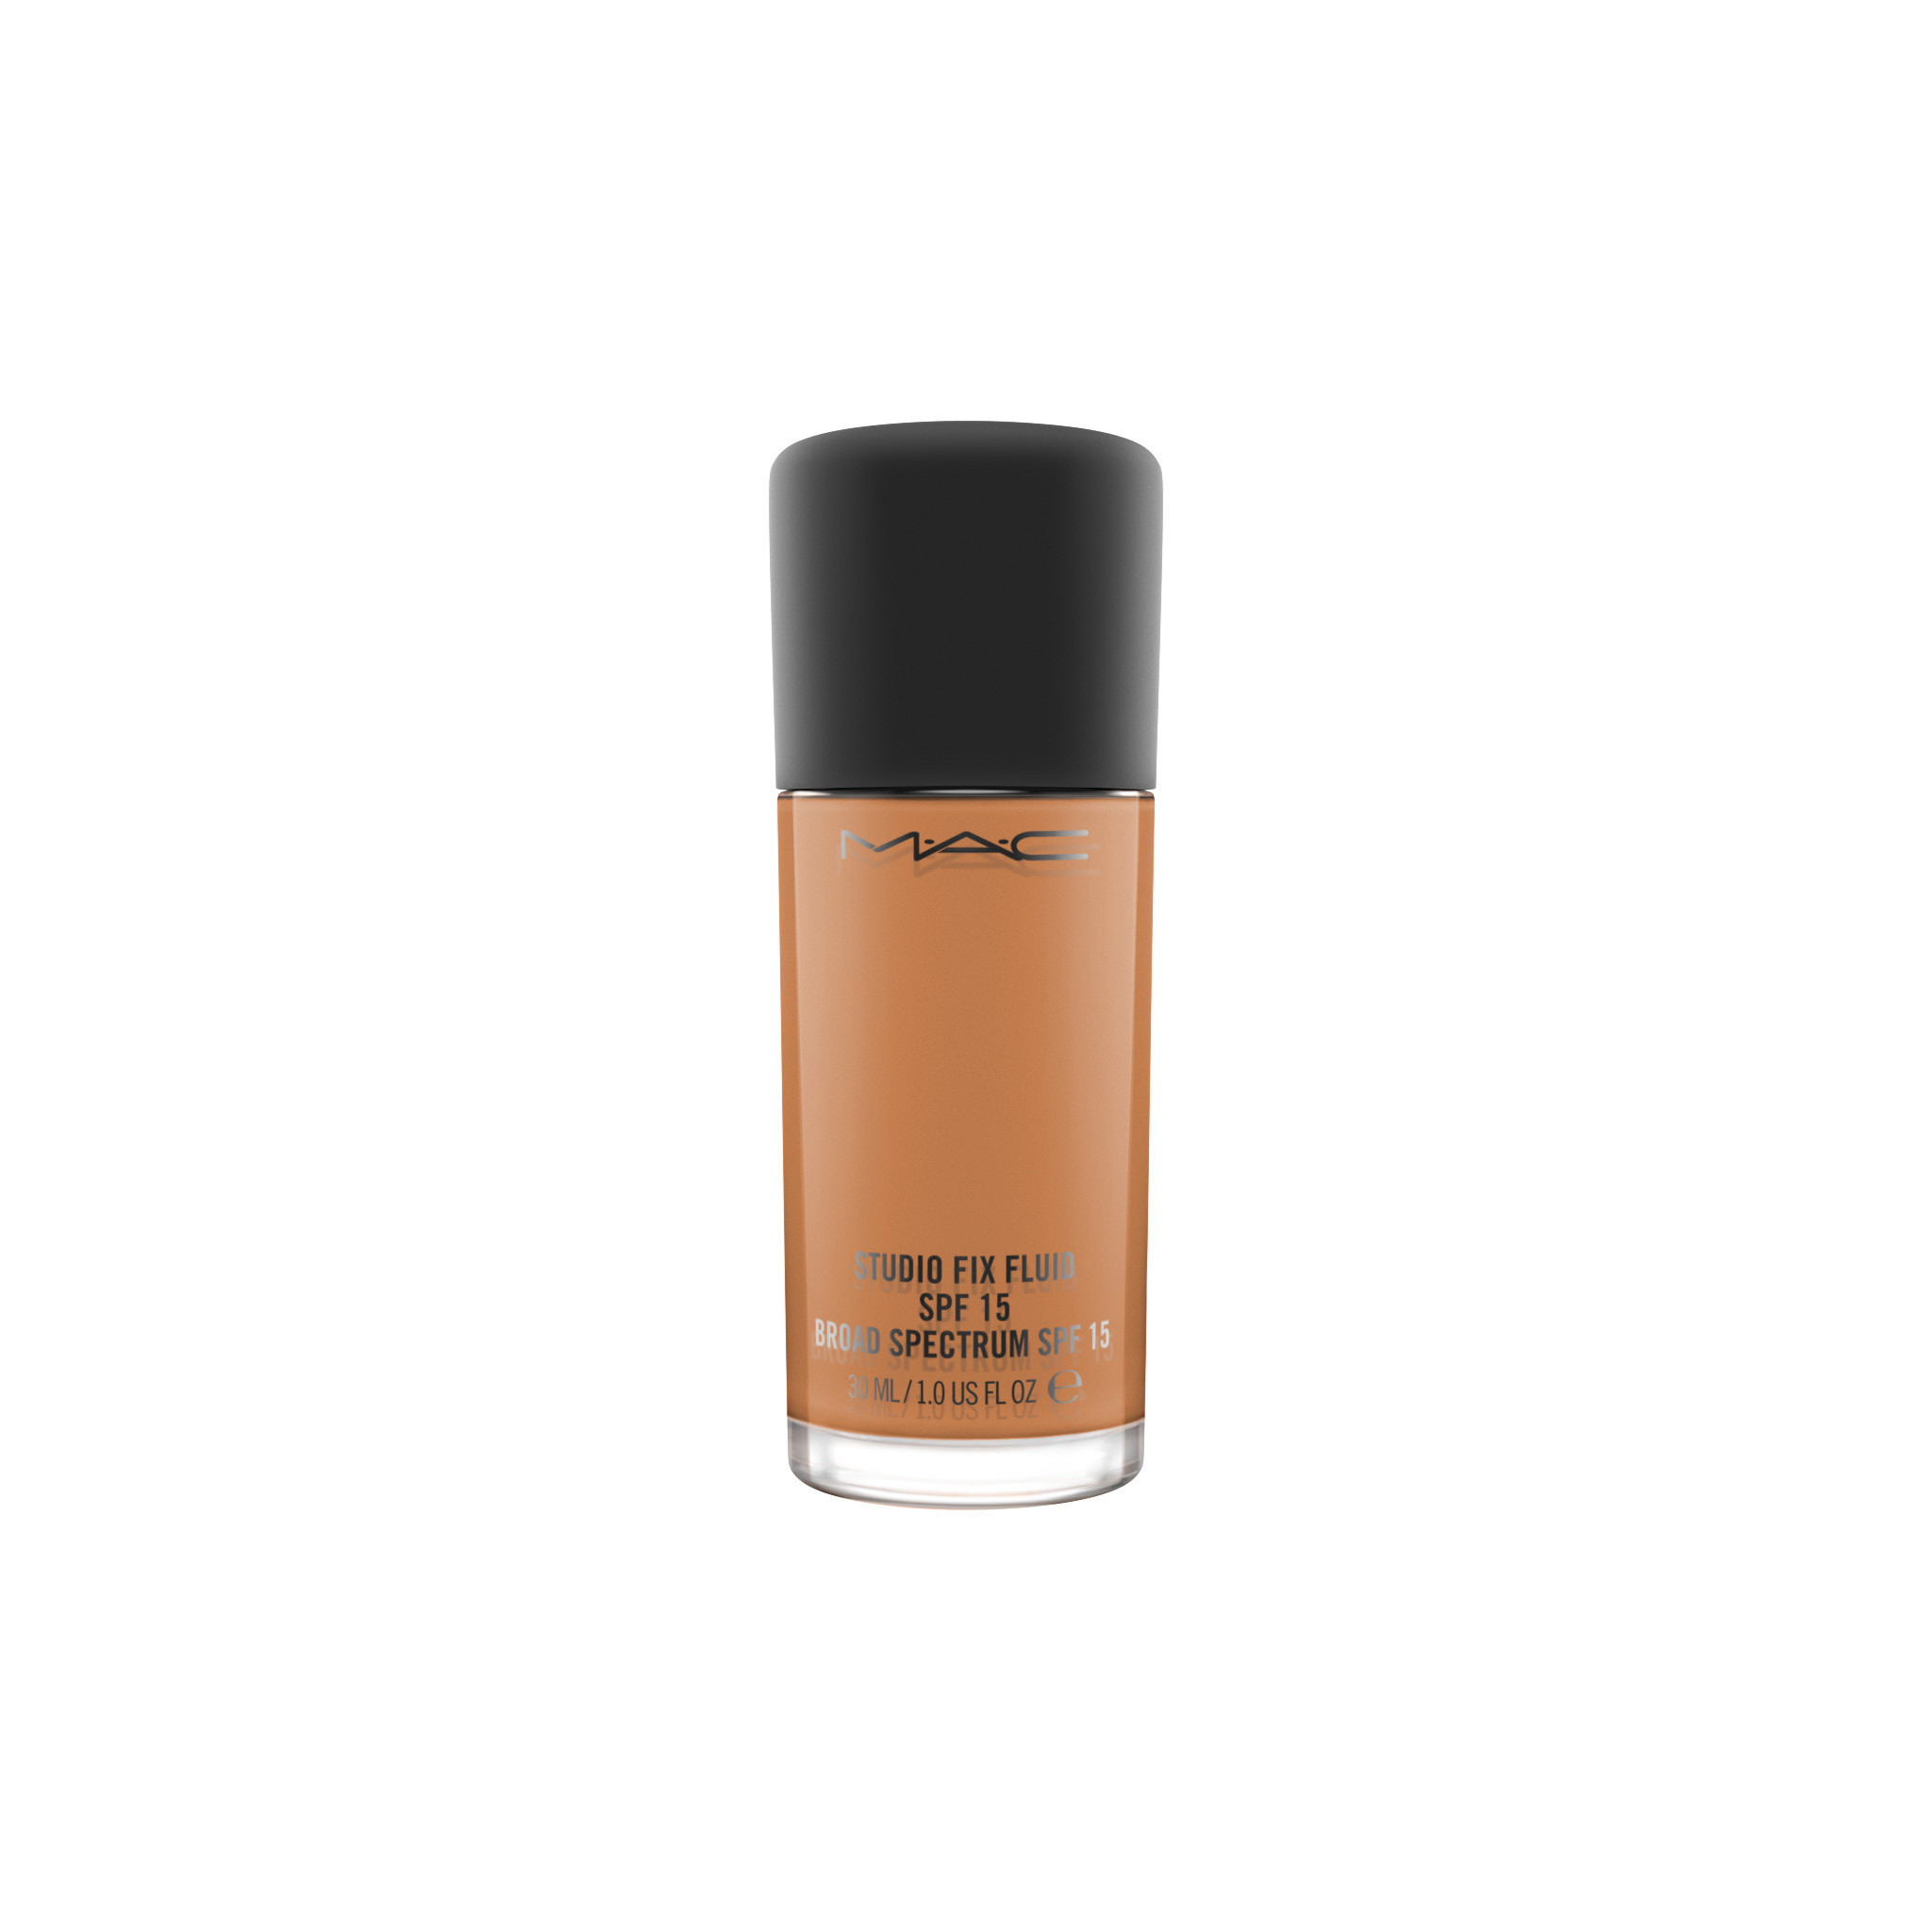 Studio Fix Fluid Foundation Spf15 - NW47, NW47, large image number 0